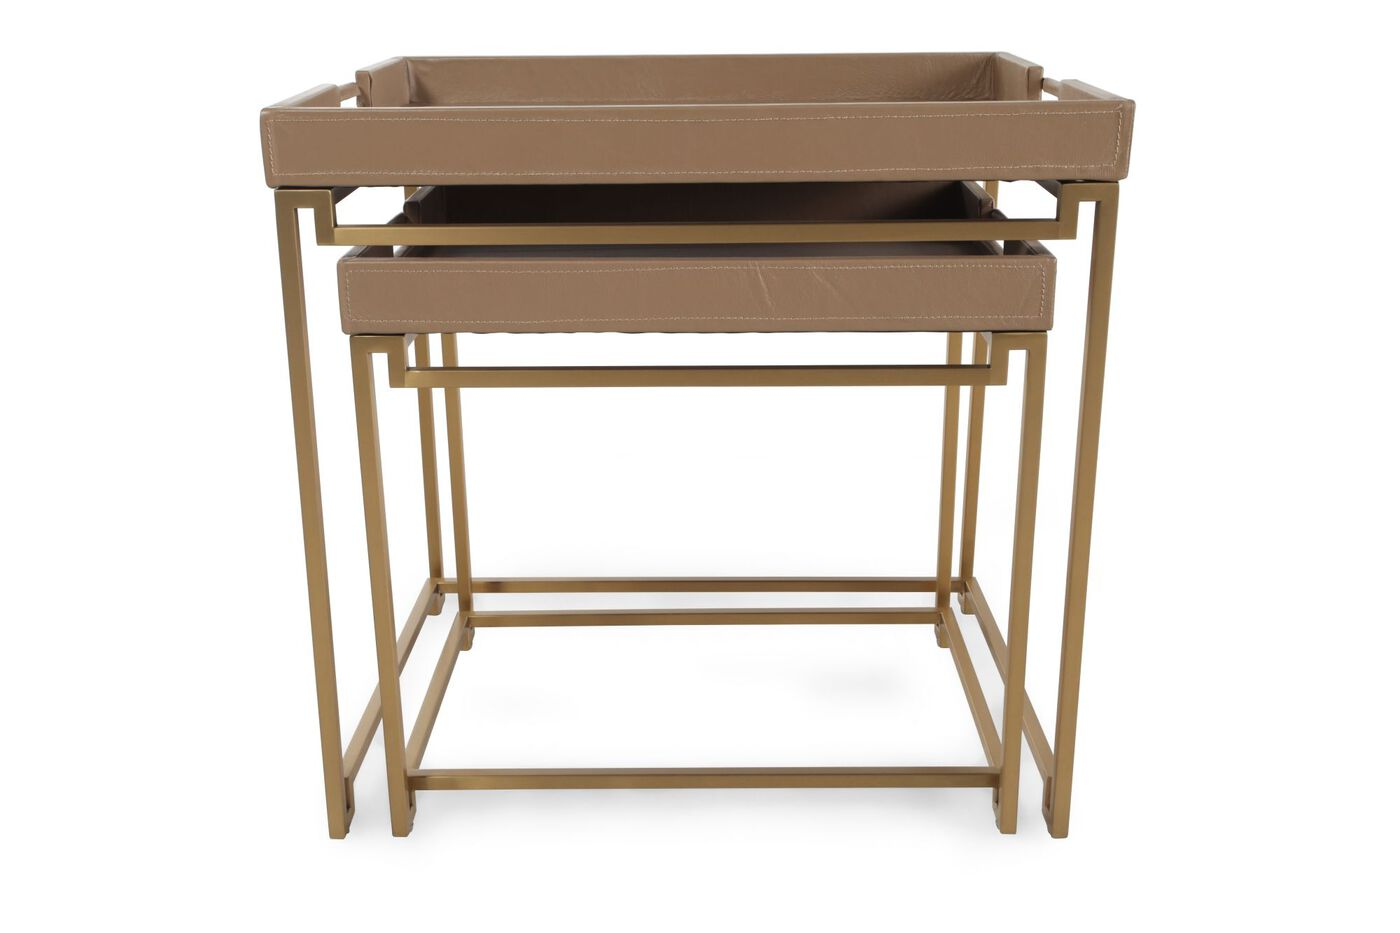 contemporary end tables. Images In/Out Box Contemporary End Tables\u0026nbsp;in Brown Tables